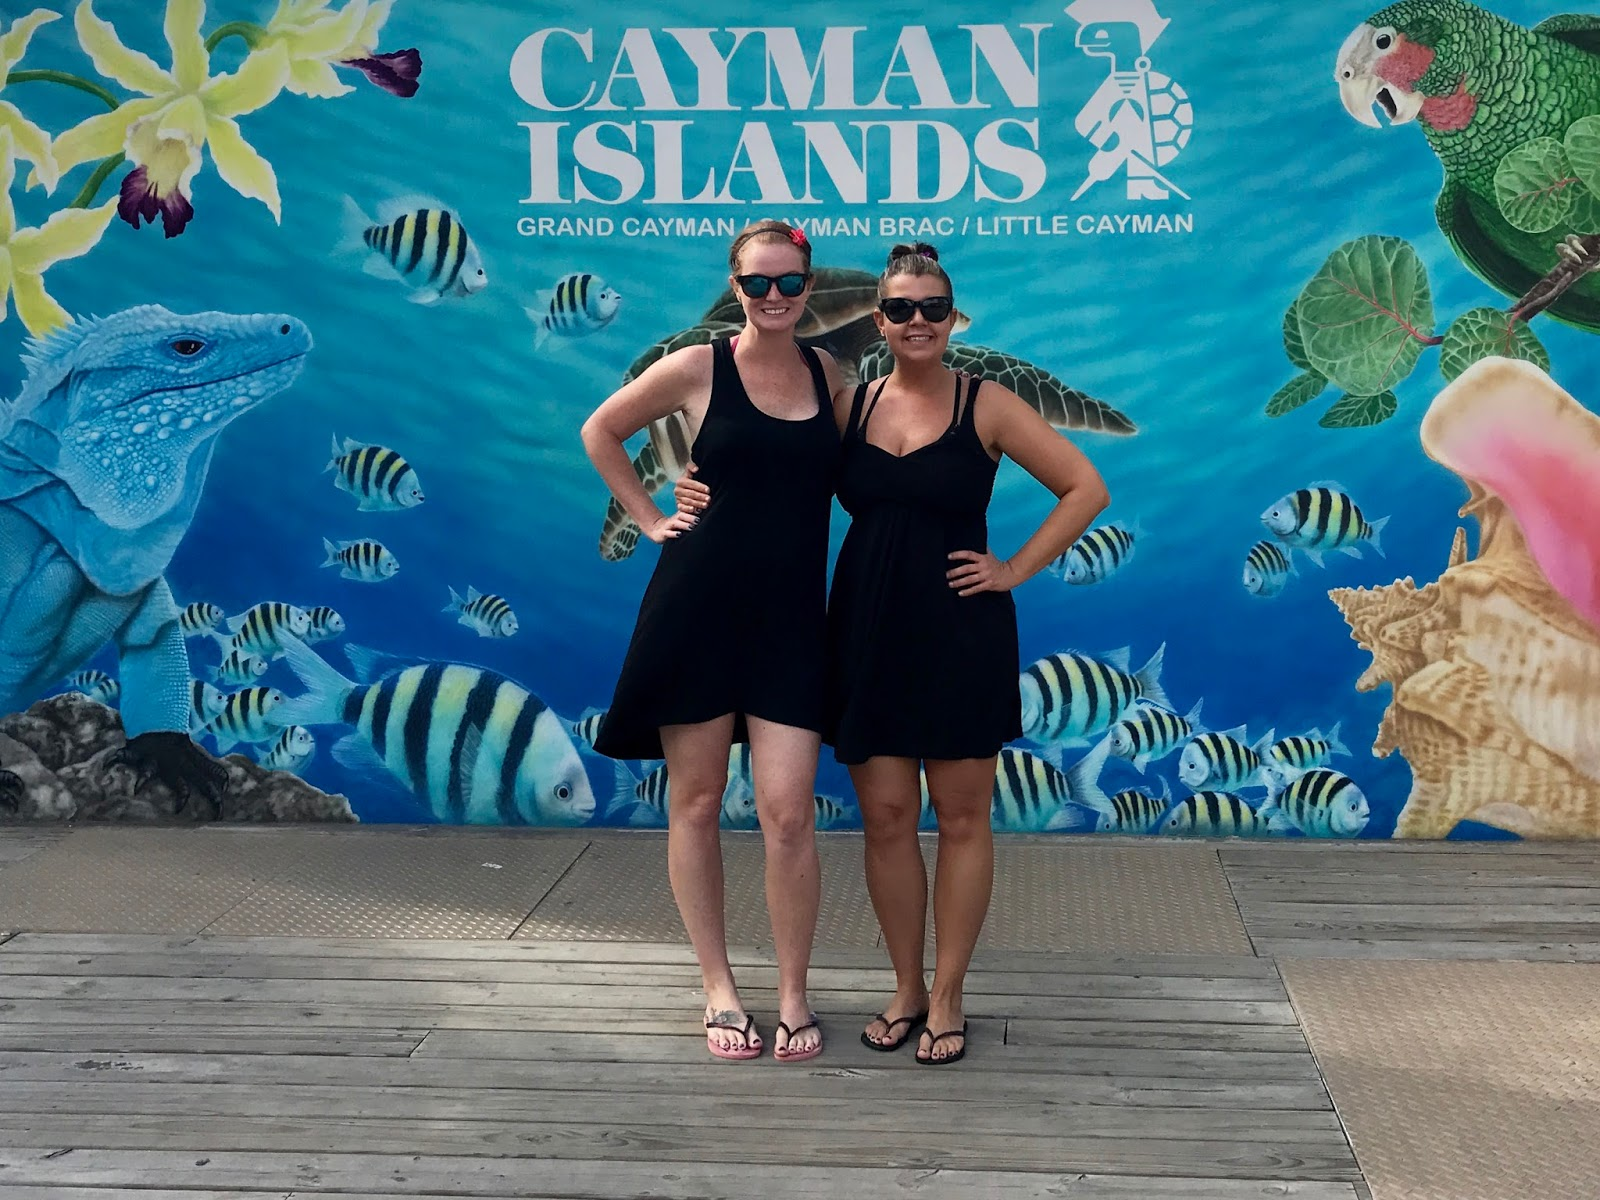 Cayman islands sex tourism